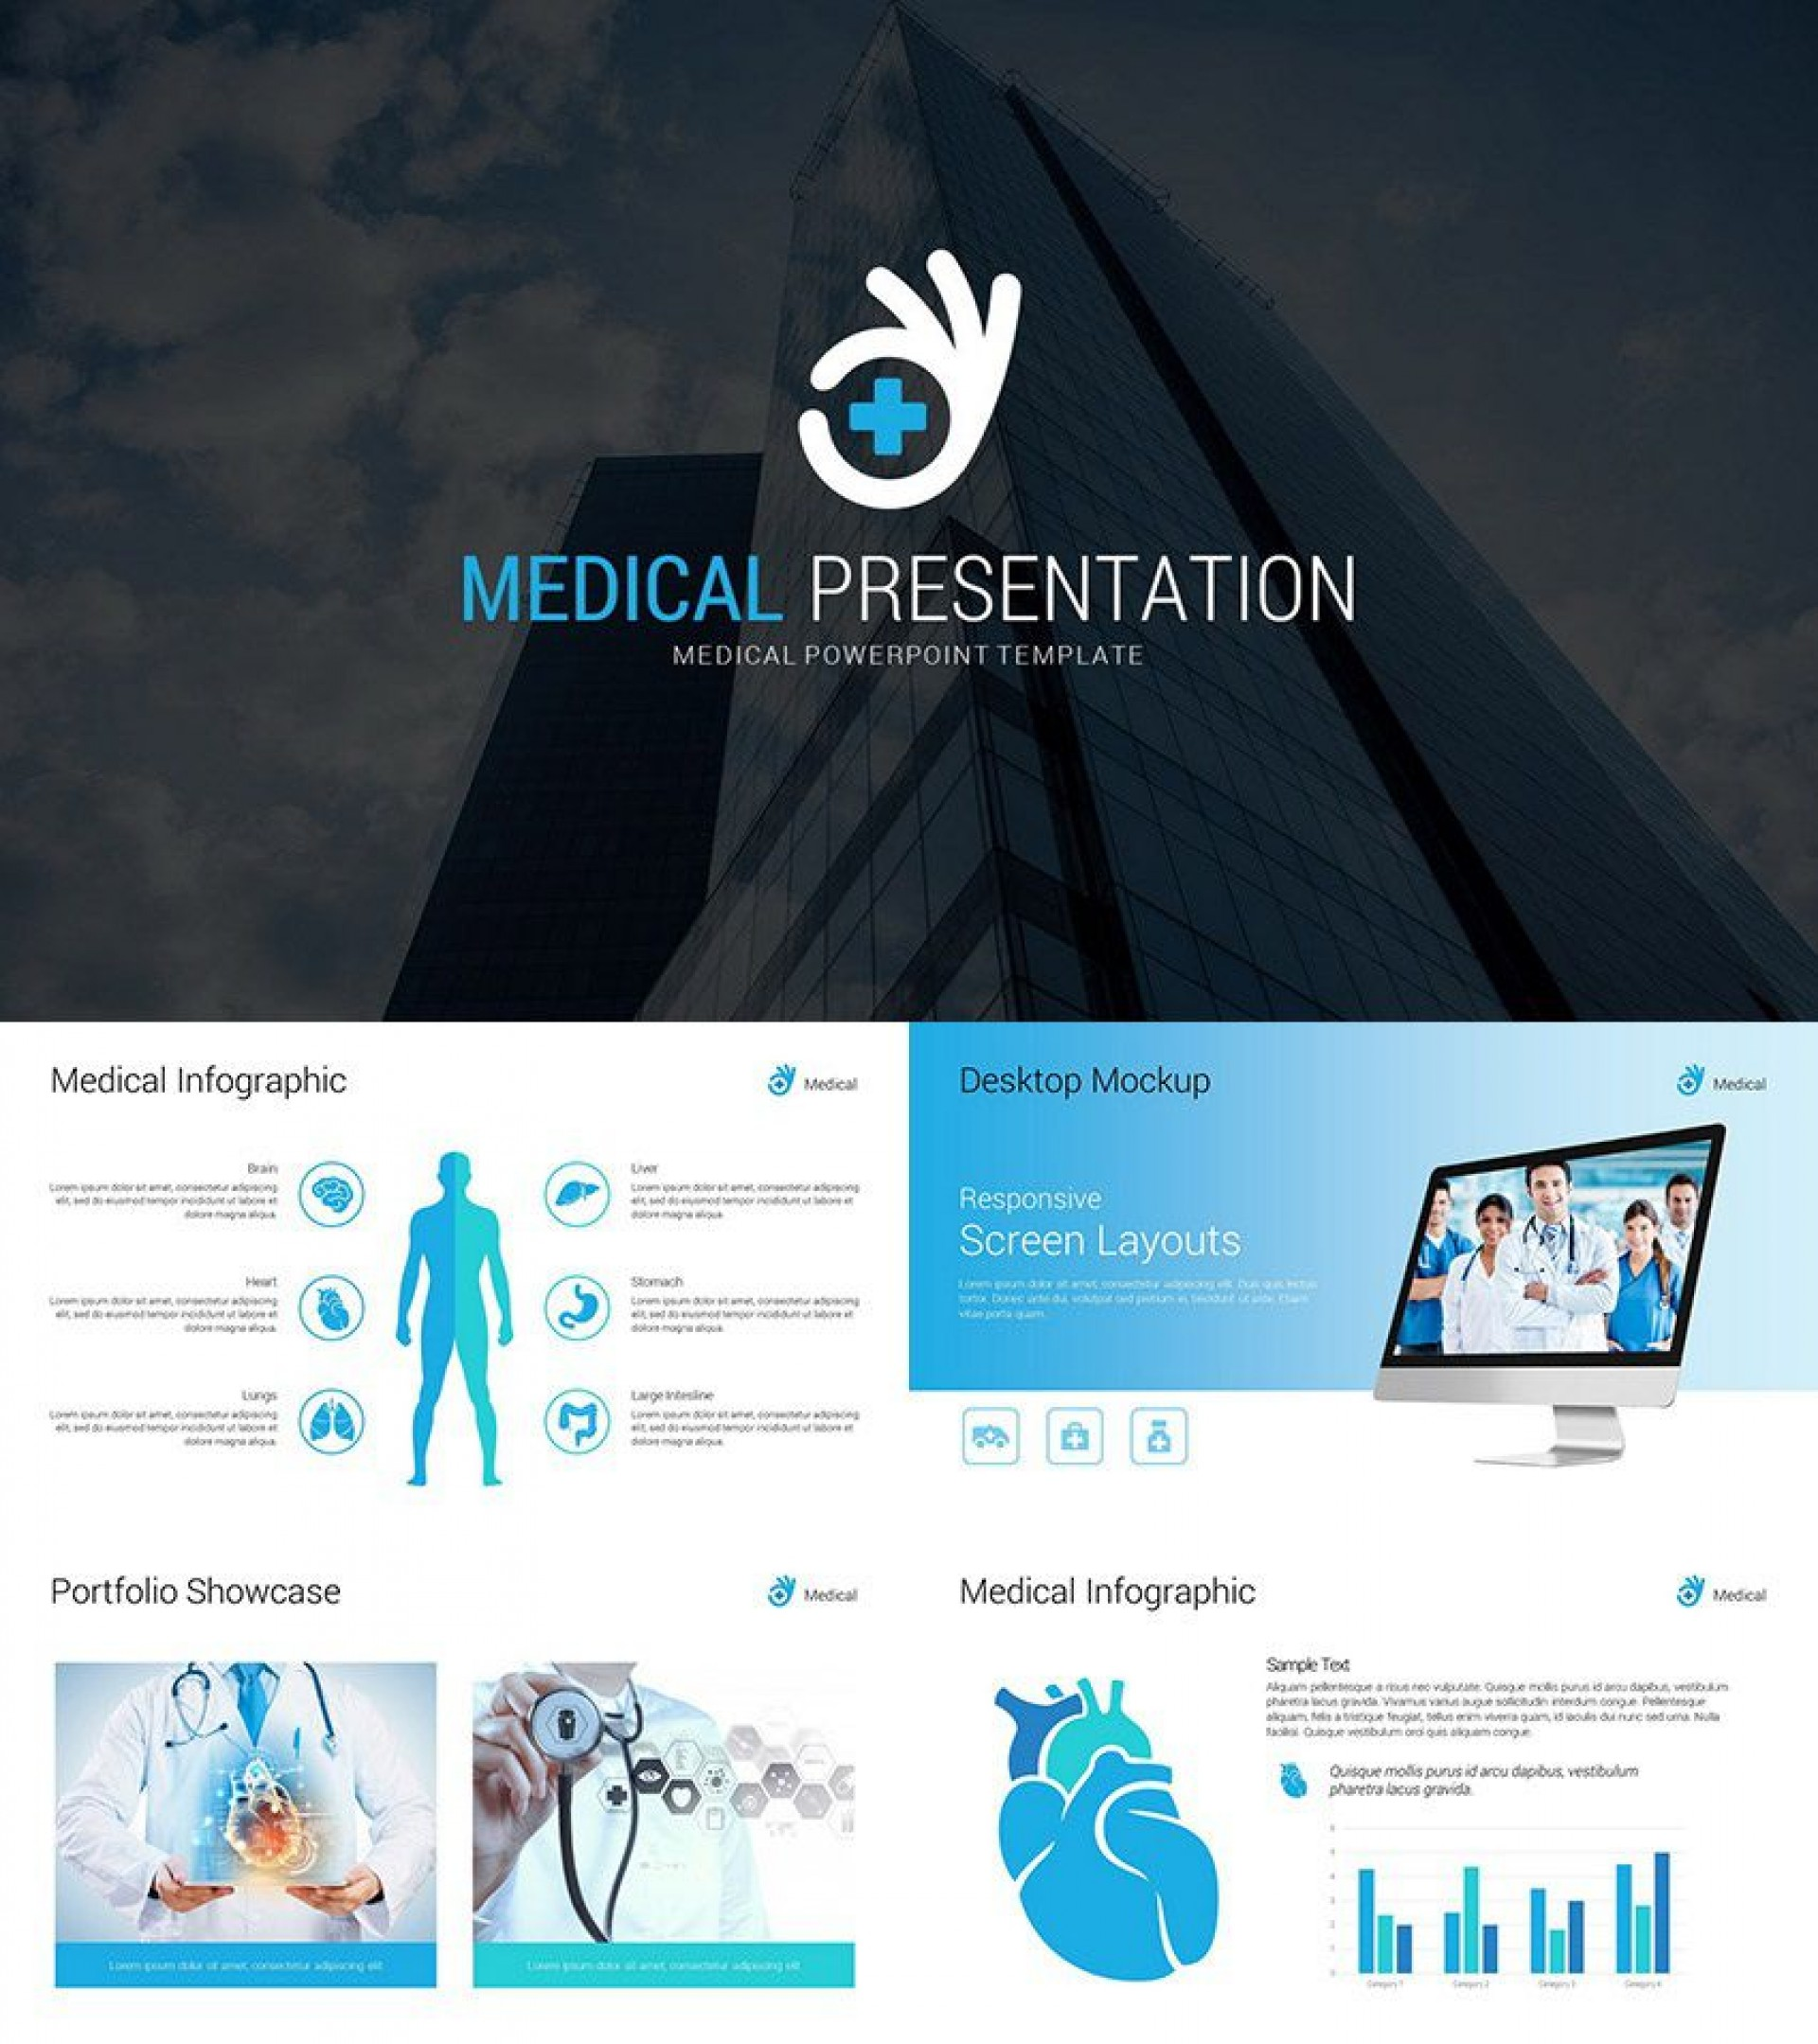 005 Phenomenal Powerpoint Presentation Template Free Download Medical Photo  Animated1920